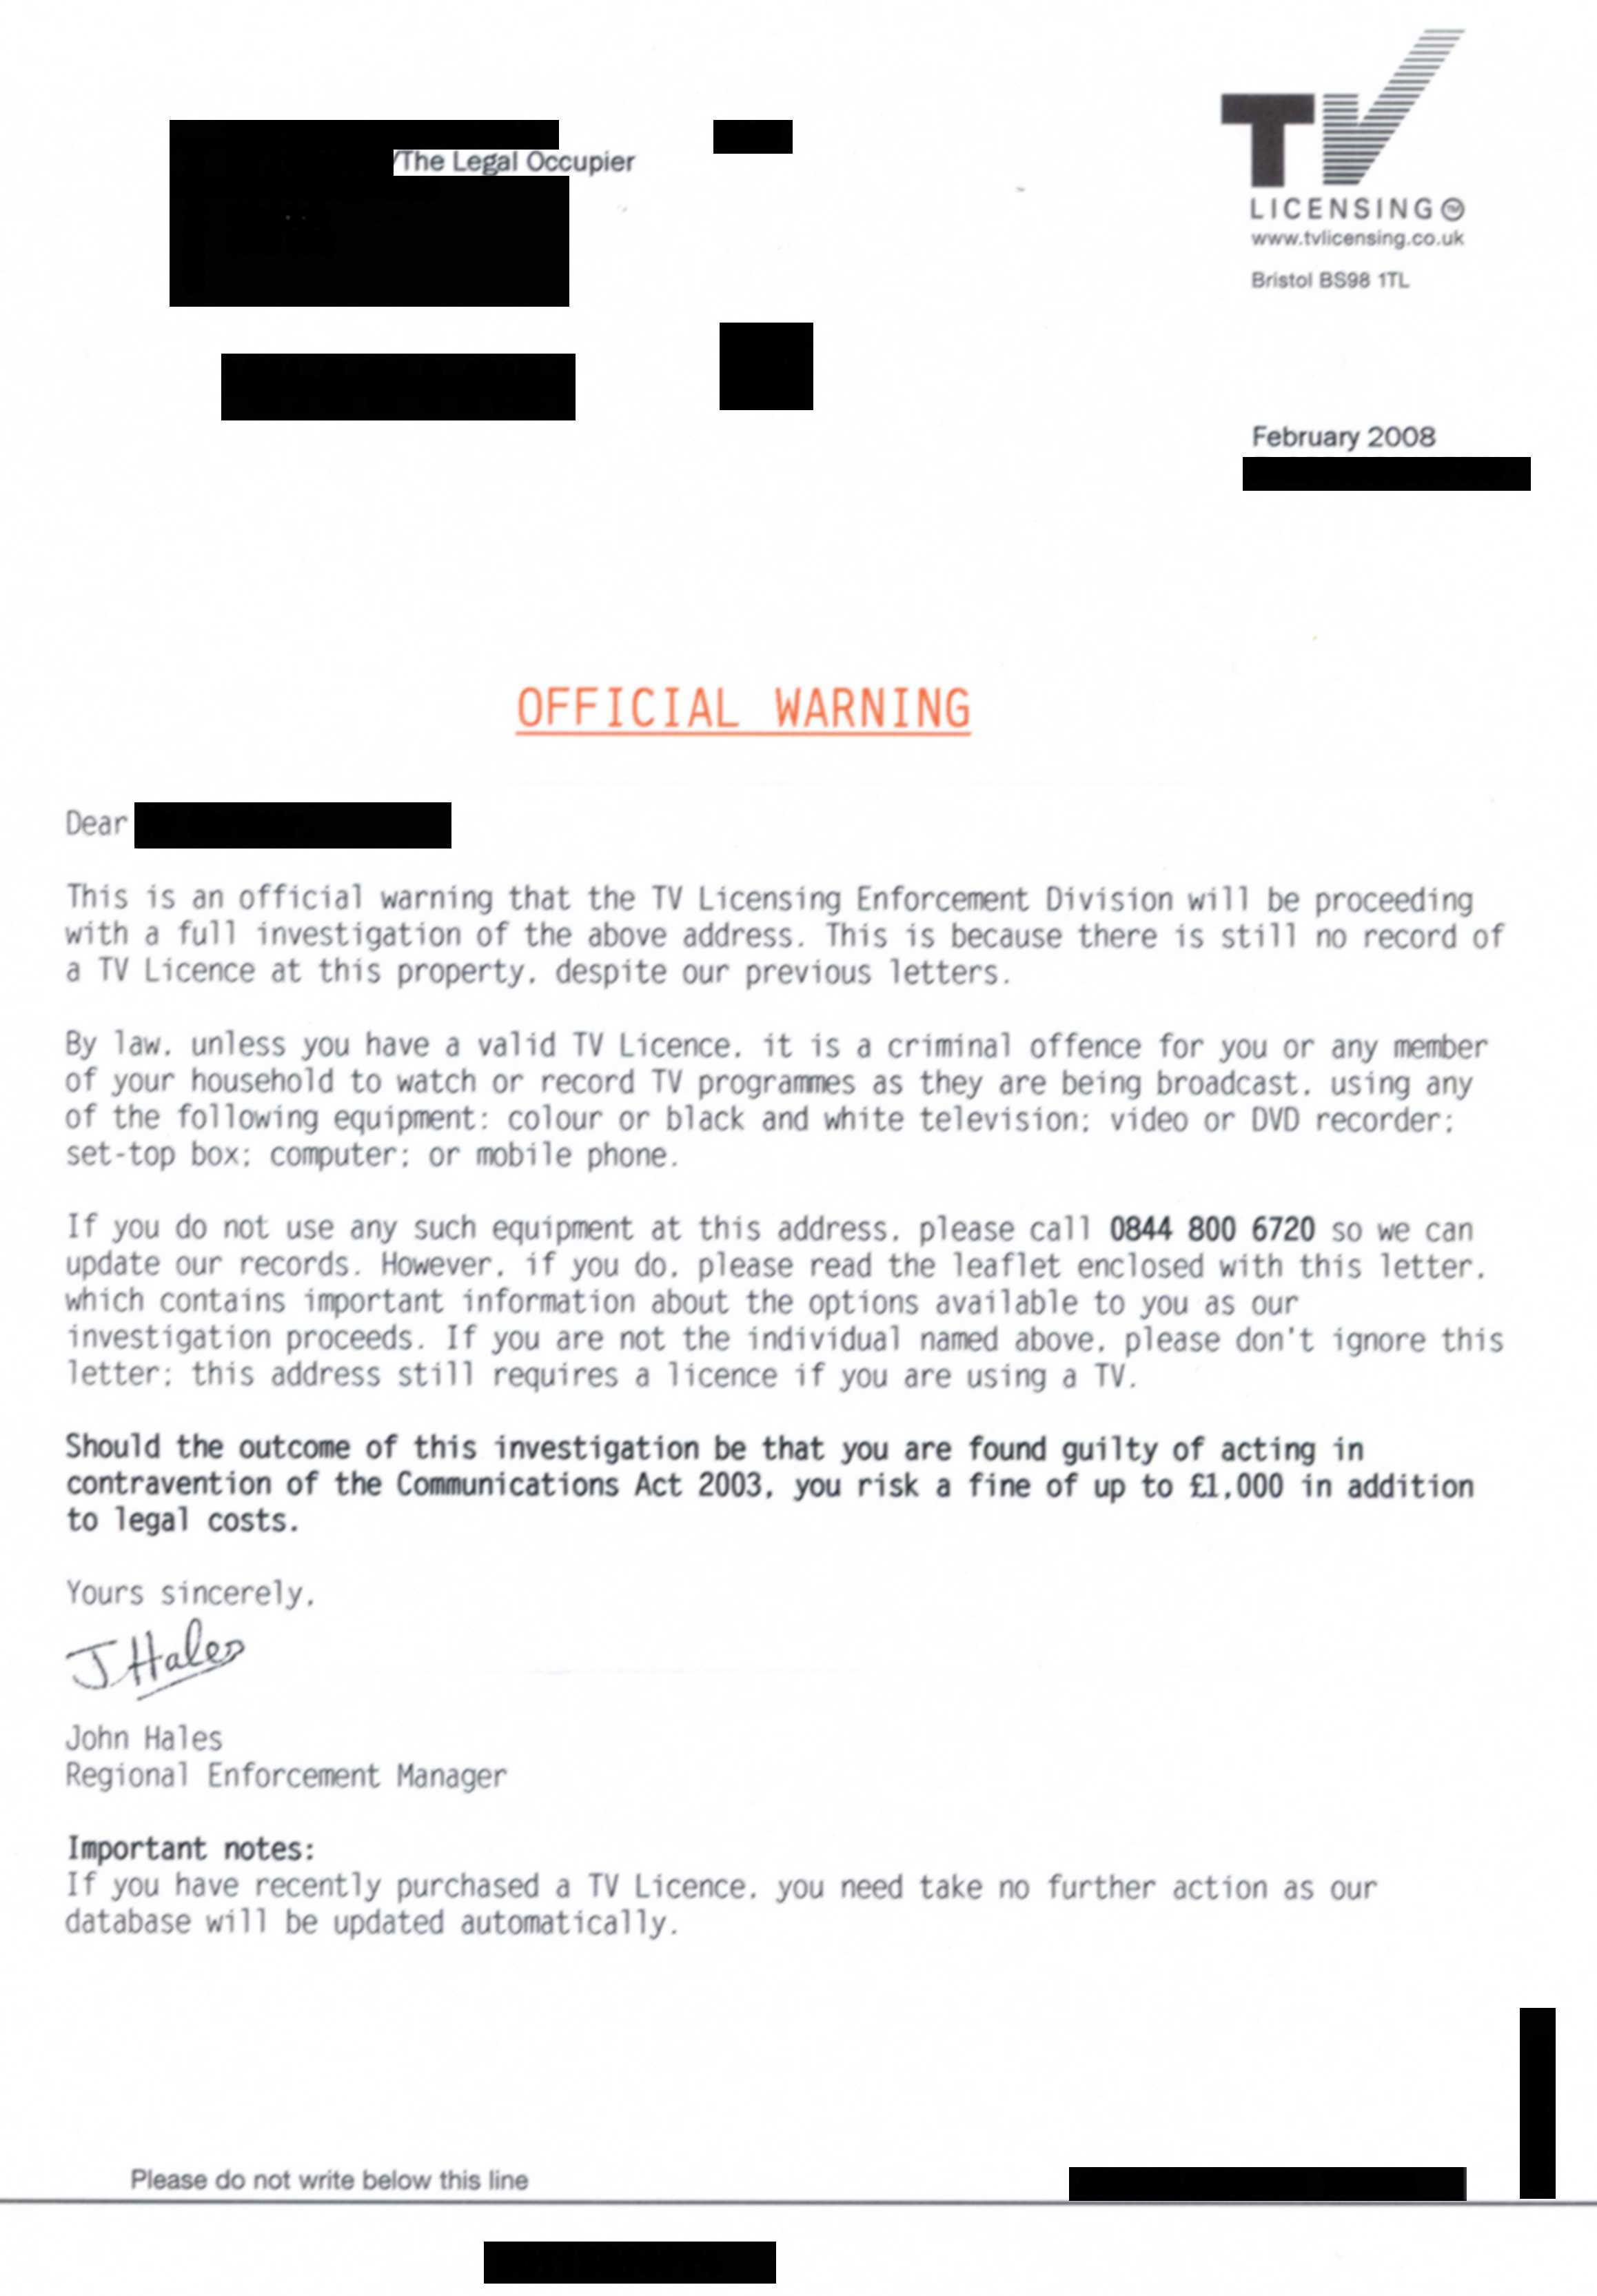 Official warning from TV licensing